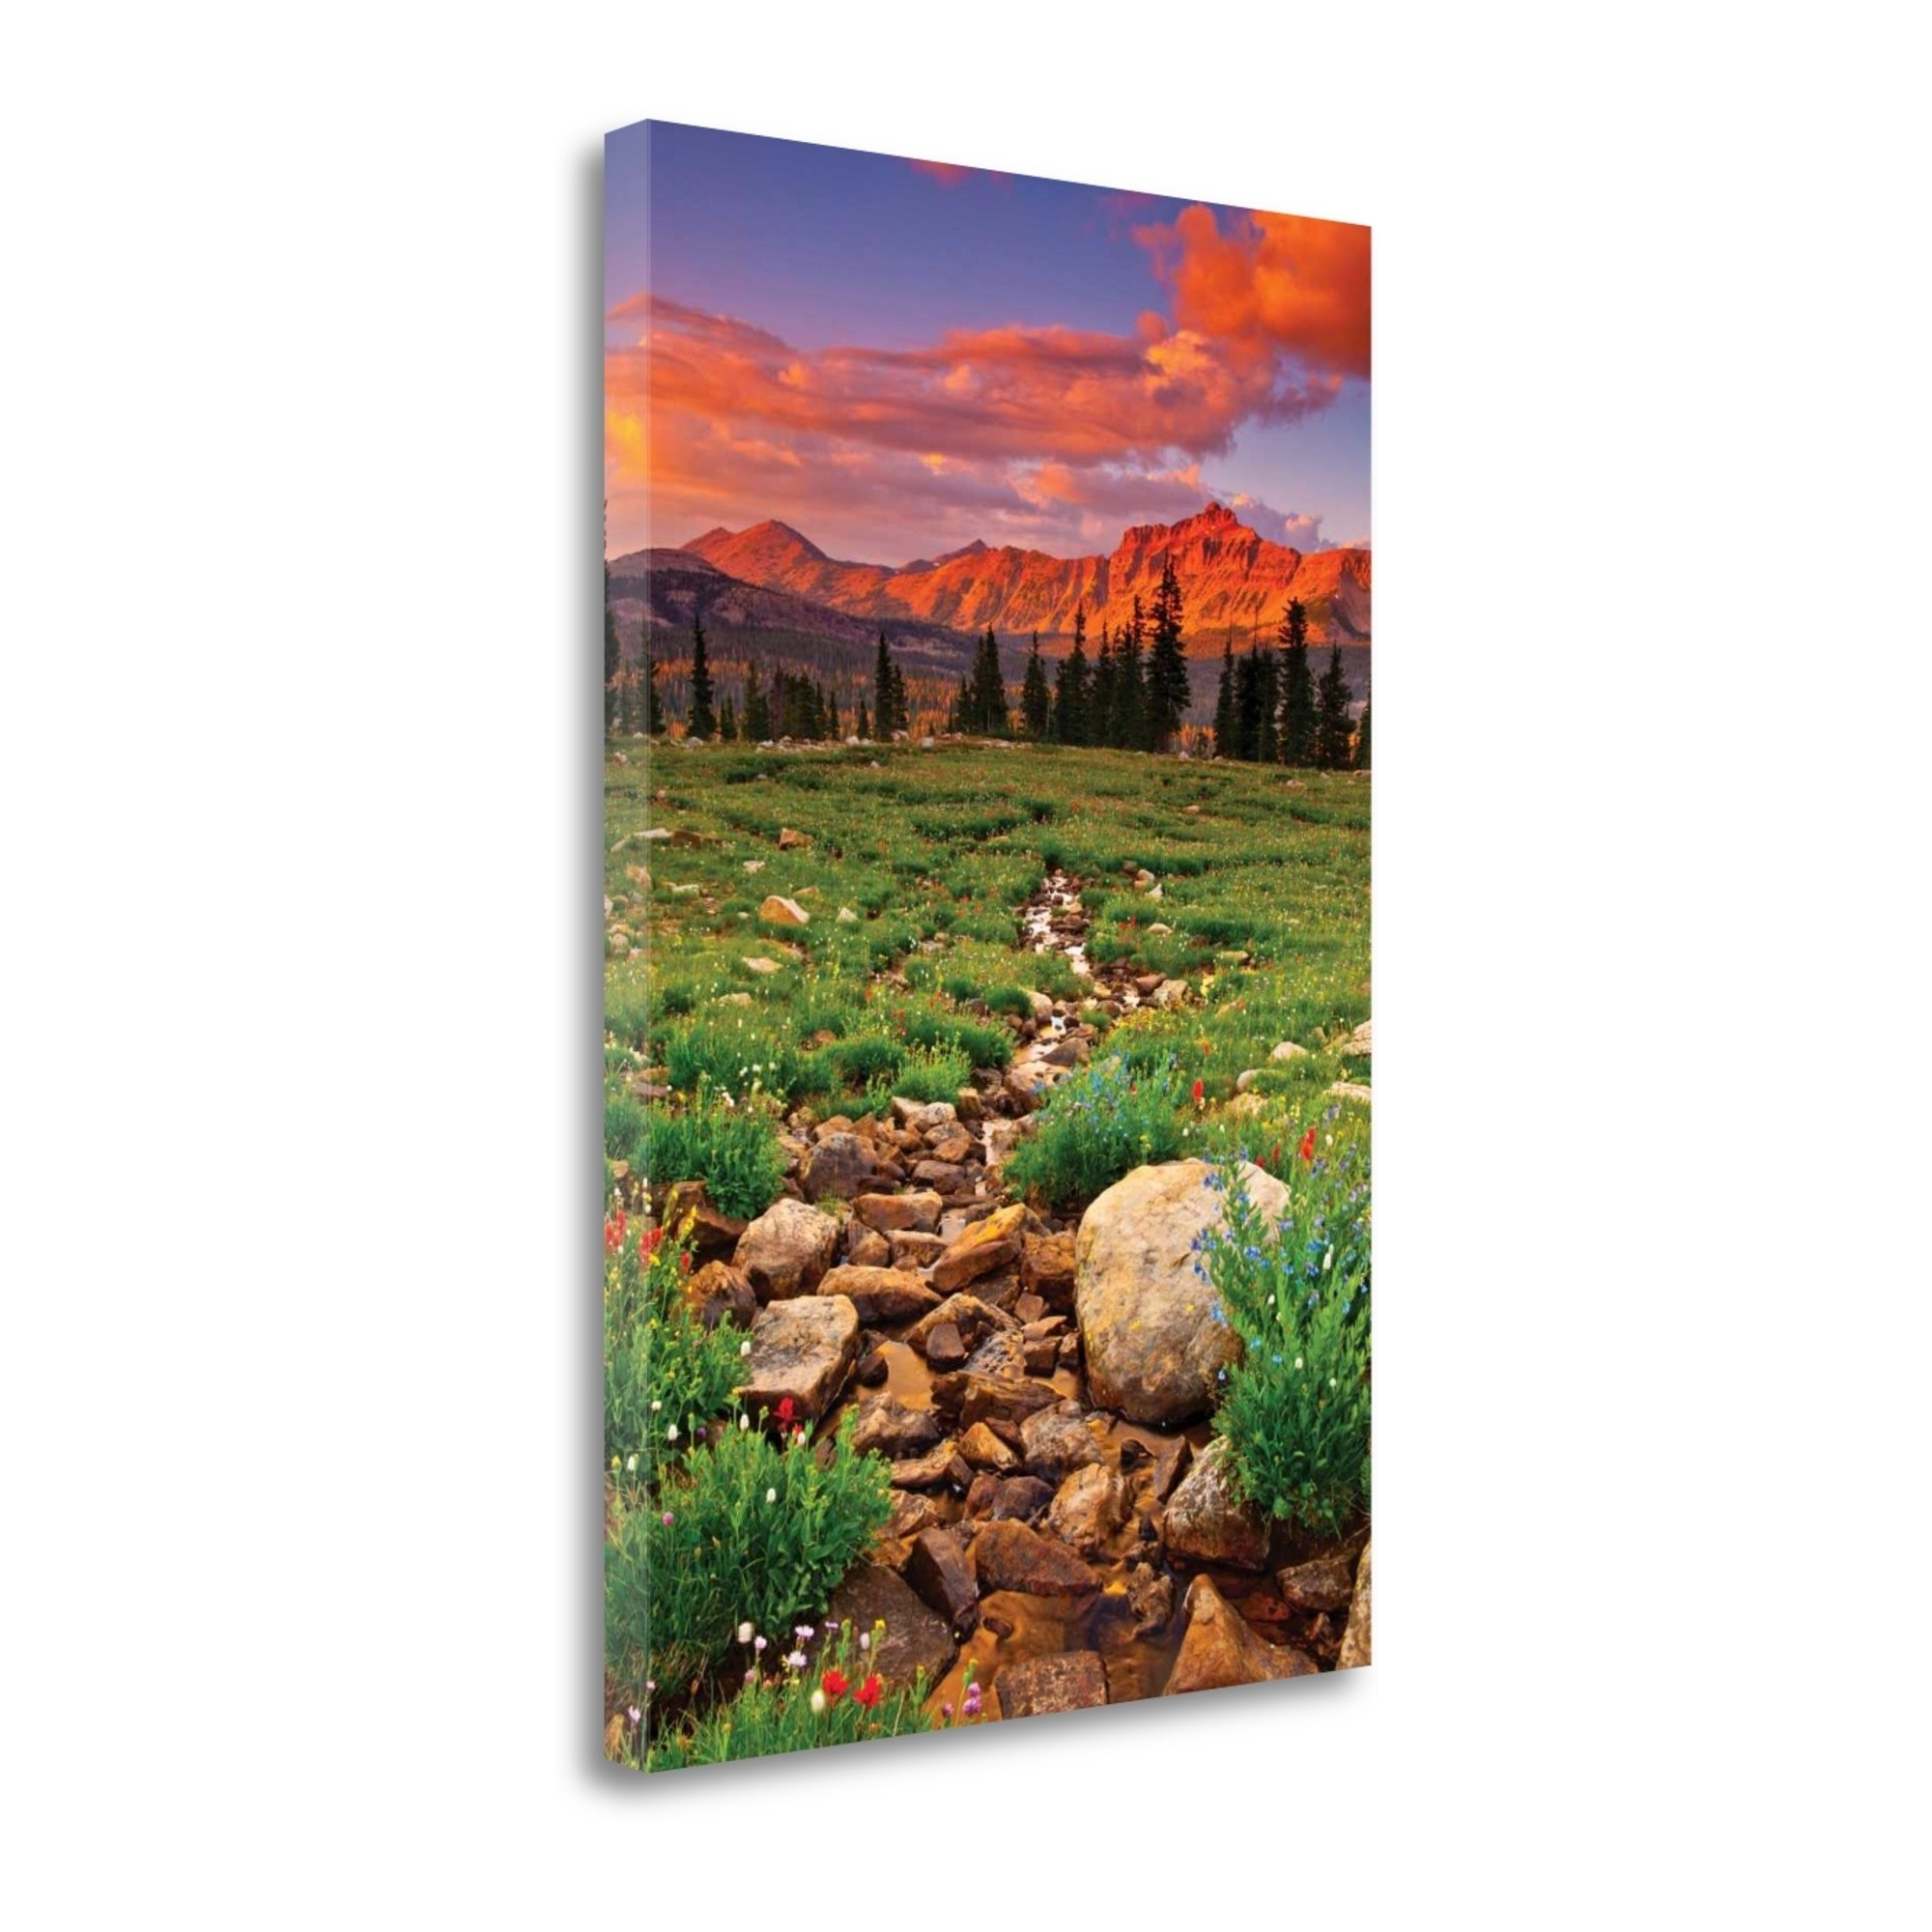 "Uinta Sunset By Gary Crandall, 18"" x 27"" Fine Art Giclee Print on Gallery Wrap Canvas, Ready to Hang"